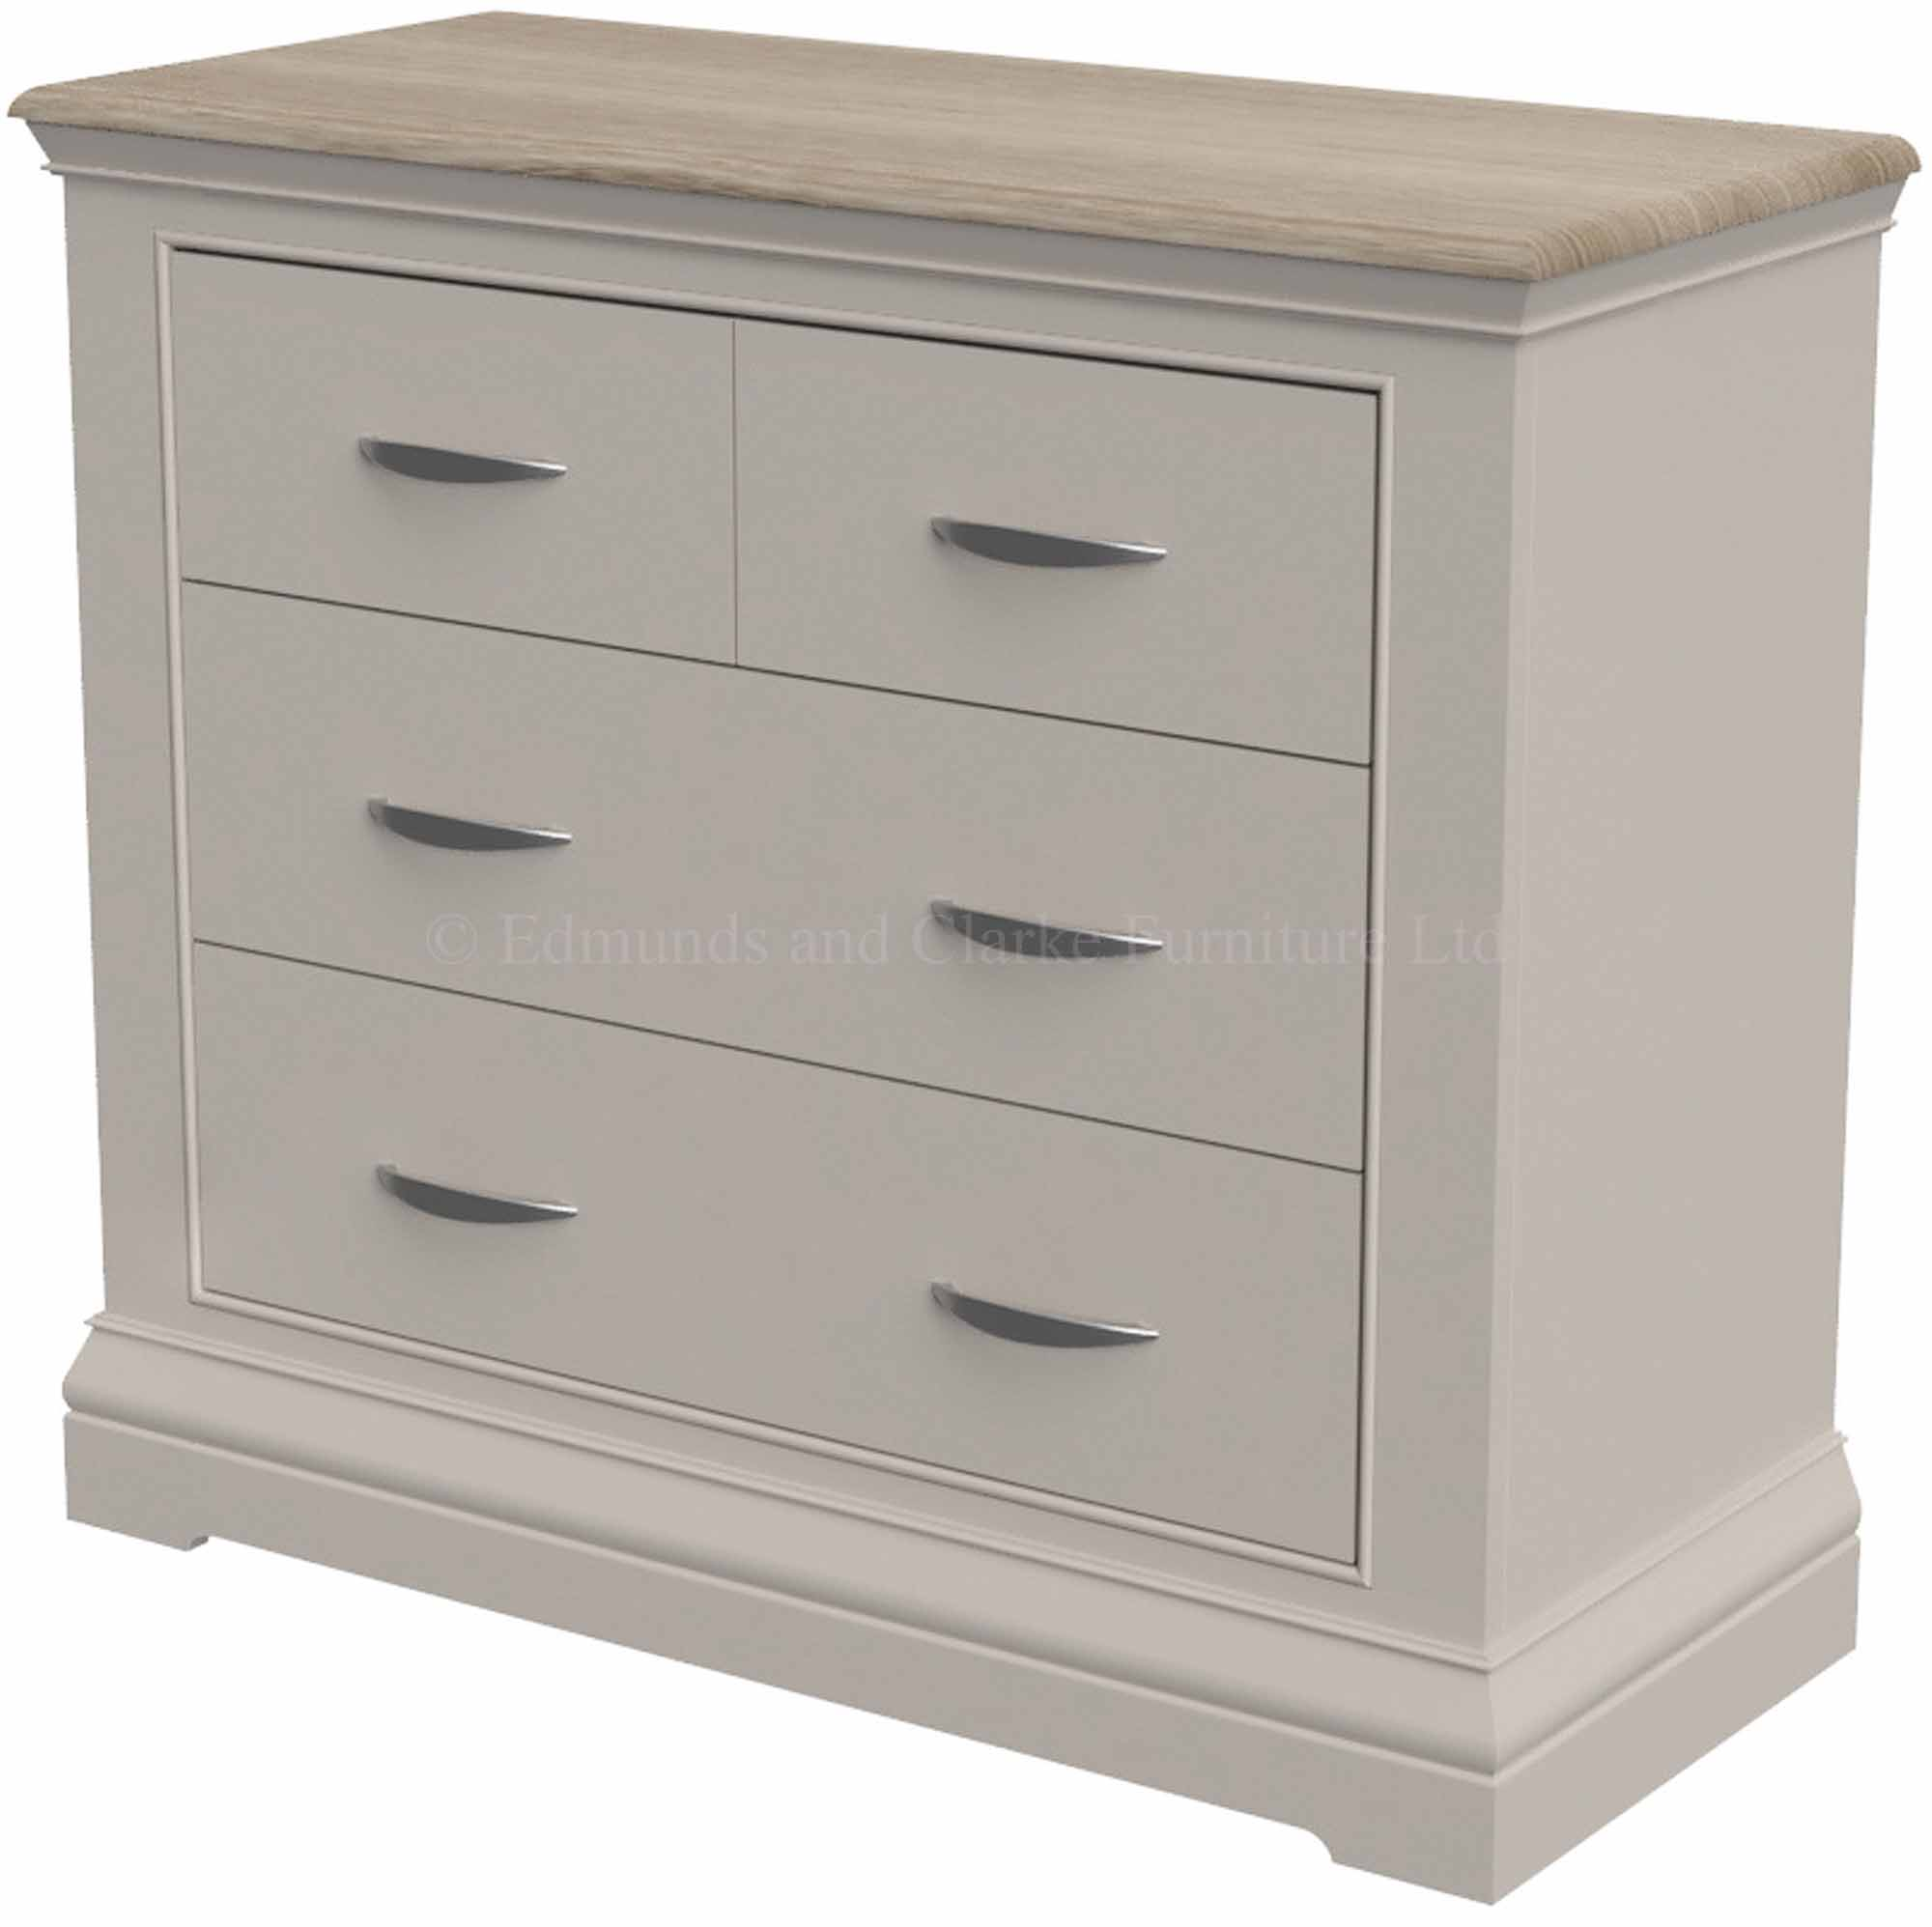 Aldeburgh 2 over 2 chest of drawers with oak top and silver handles